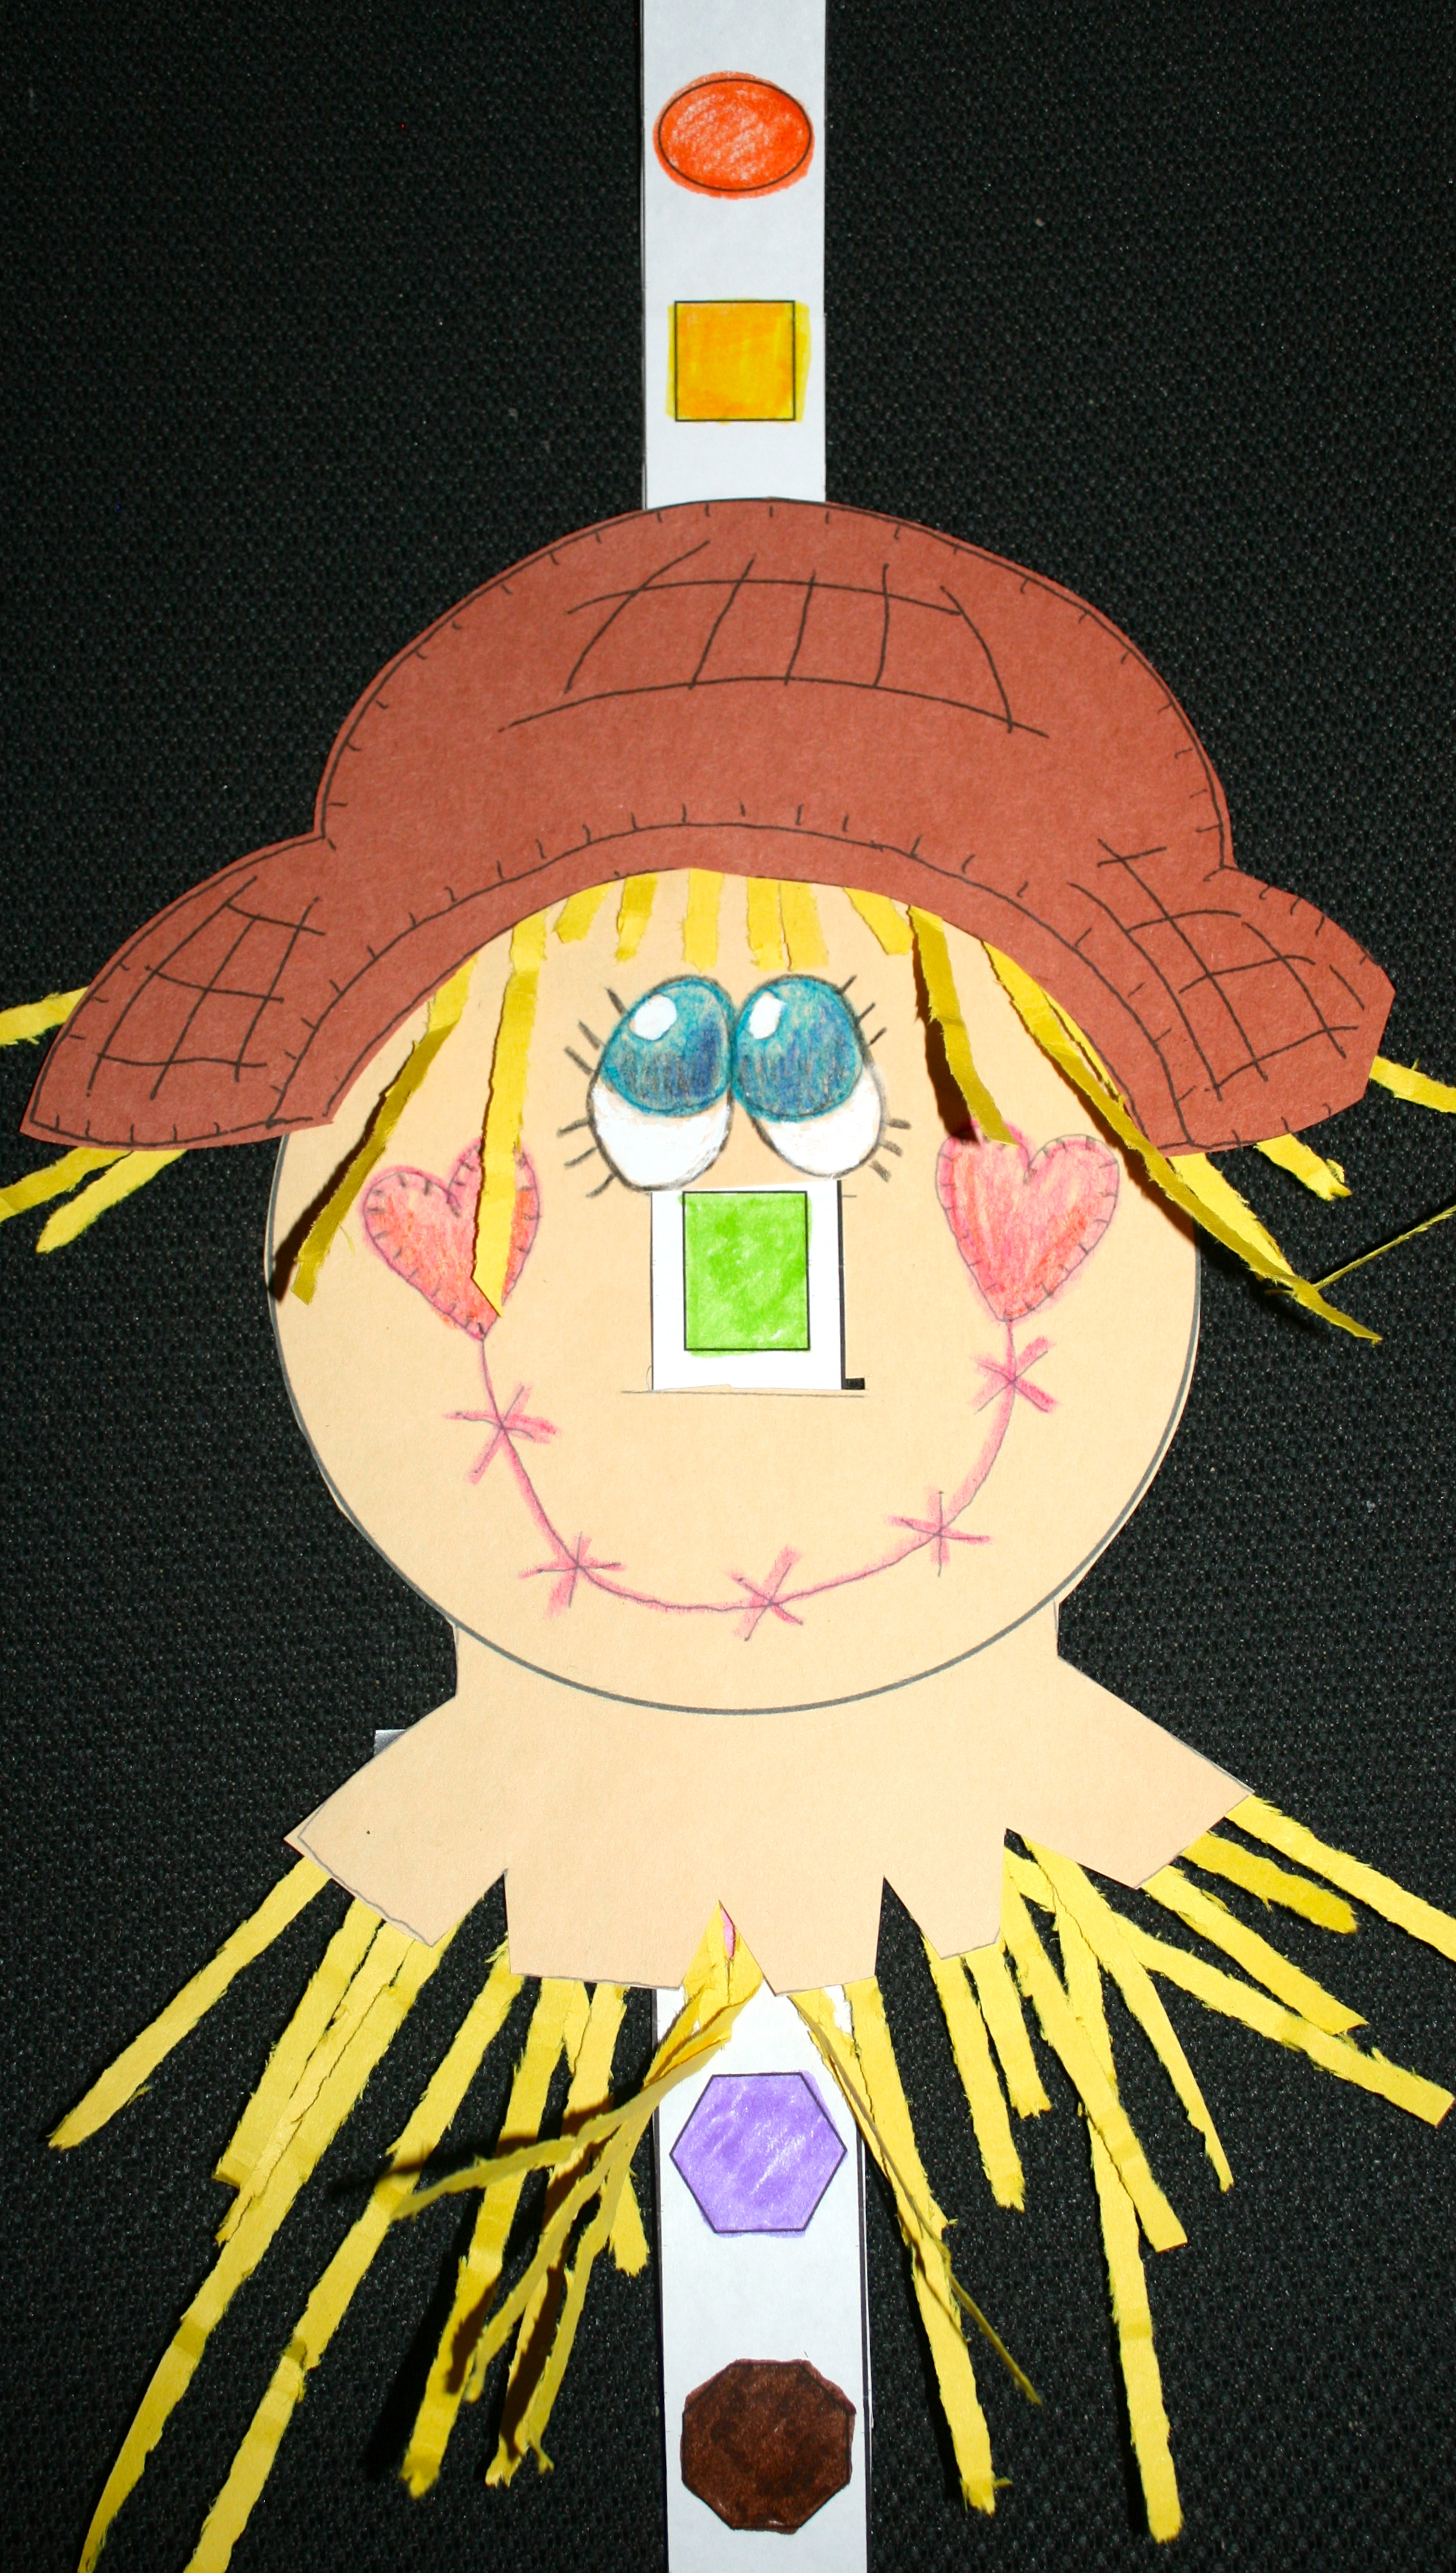 scarecrows, scarecrow crafts, shape activities, shape crafts, scarecrow activities, 2D shapes, ccss shapes